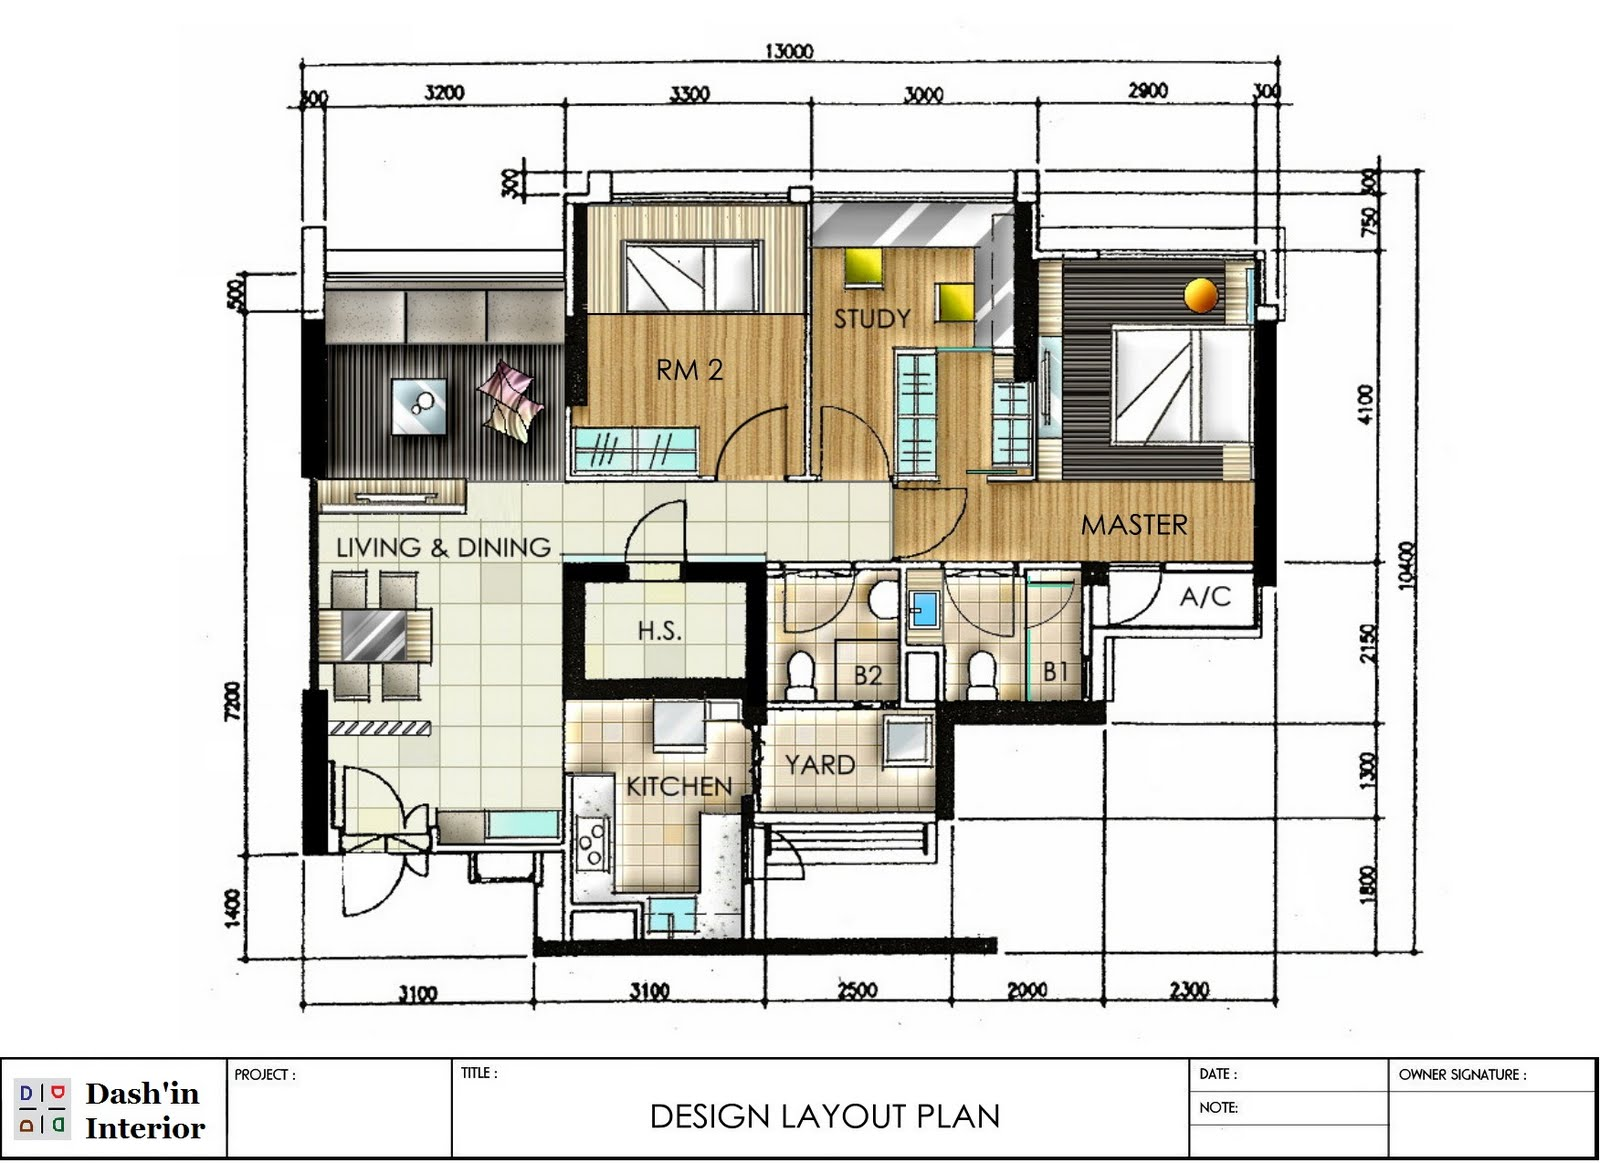 Dash 39 in interior hand drawn designs floor plan layout for Floor plan designer